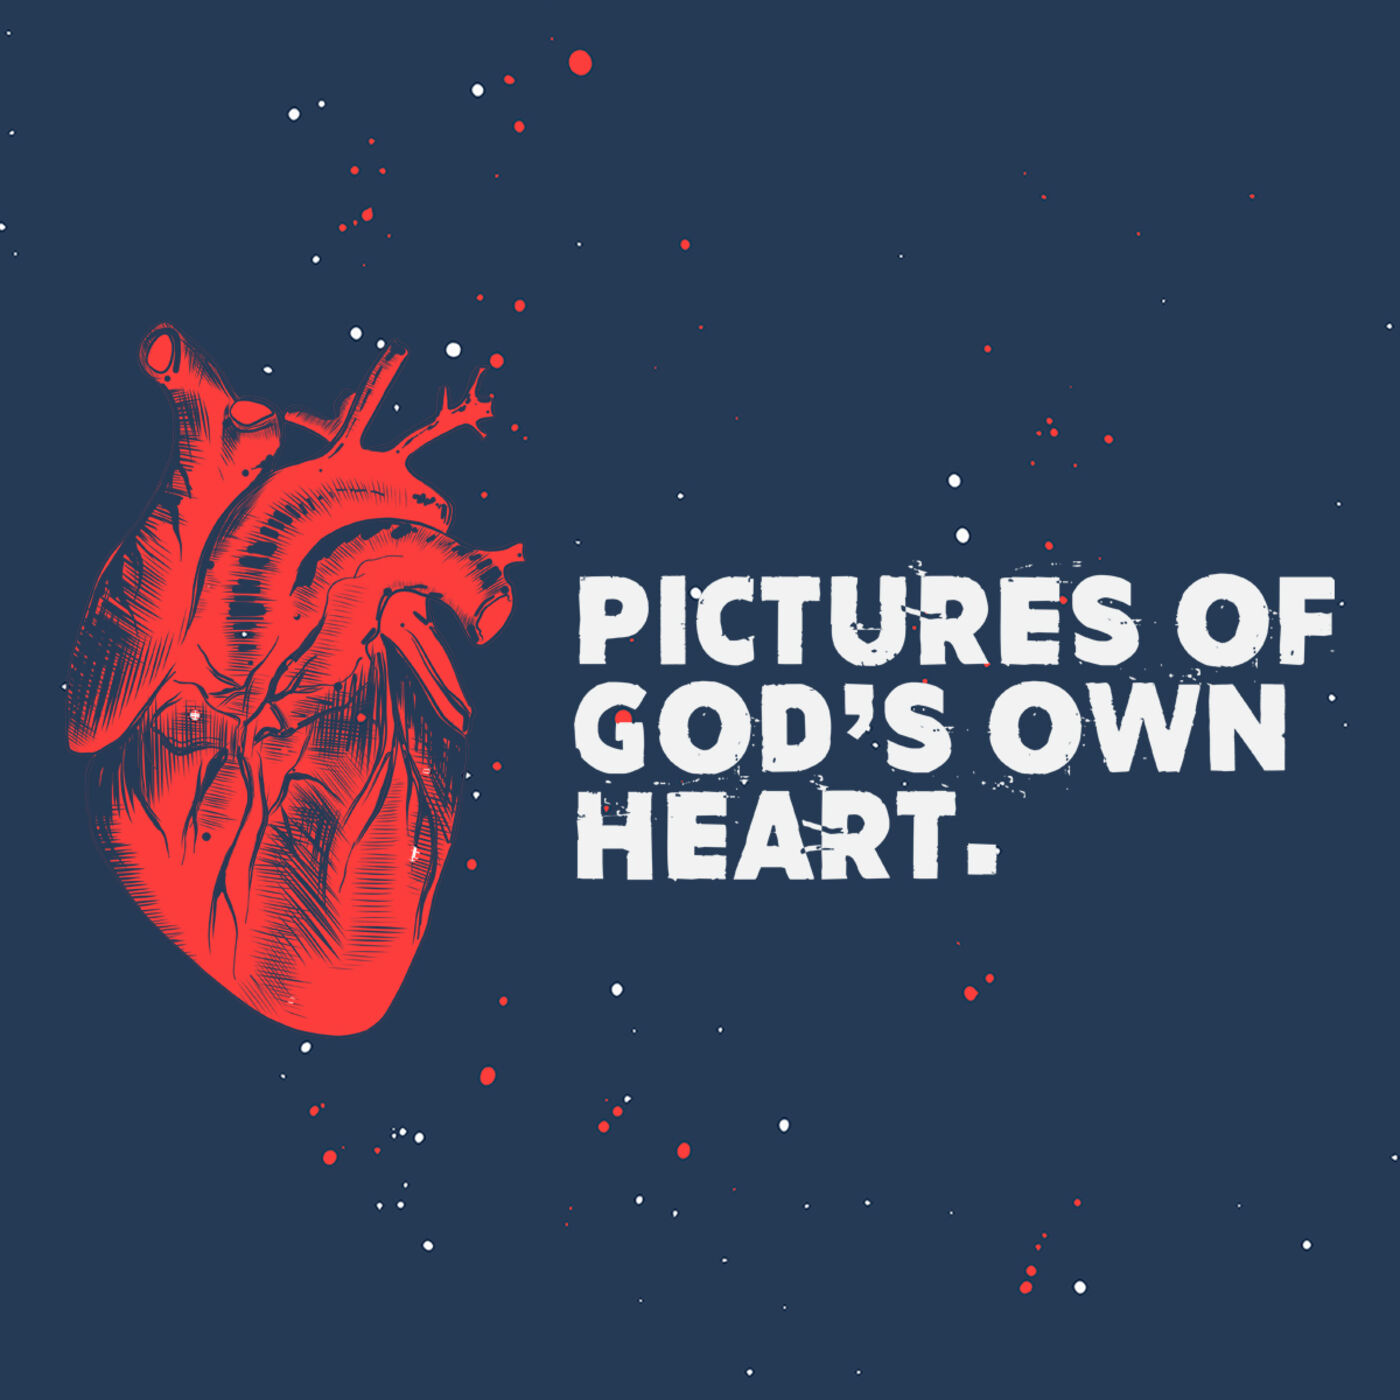 Pictures Of God's Own Heart #2